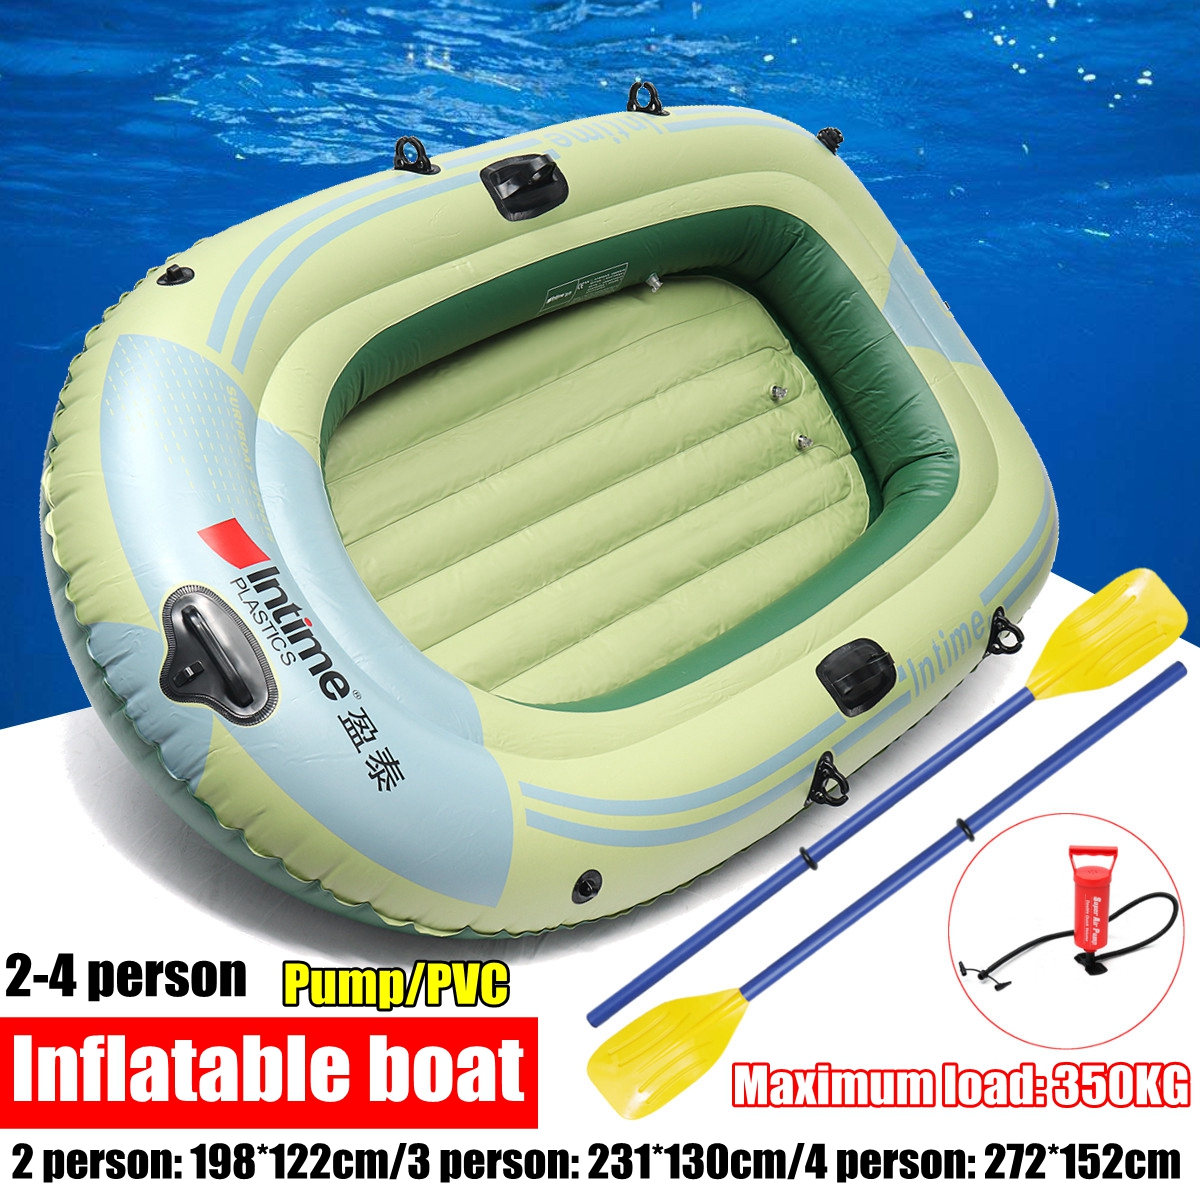 Sports Inflatable Fishing Boat Raft PVC Canoe Dinghy Tender 2/3/4 Person Kayak Fishing Boats Cushion Rowing Boats внешний жесткий диск hdd western digital original usb 3 0 2tb wdbuax 0020 bbl eeue my passport